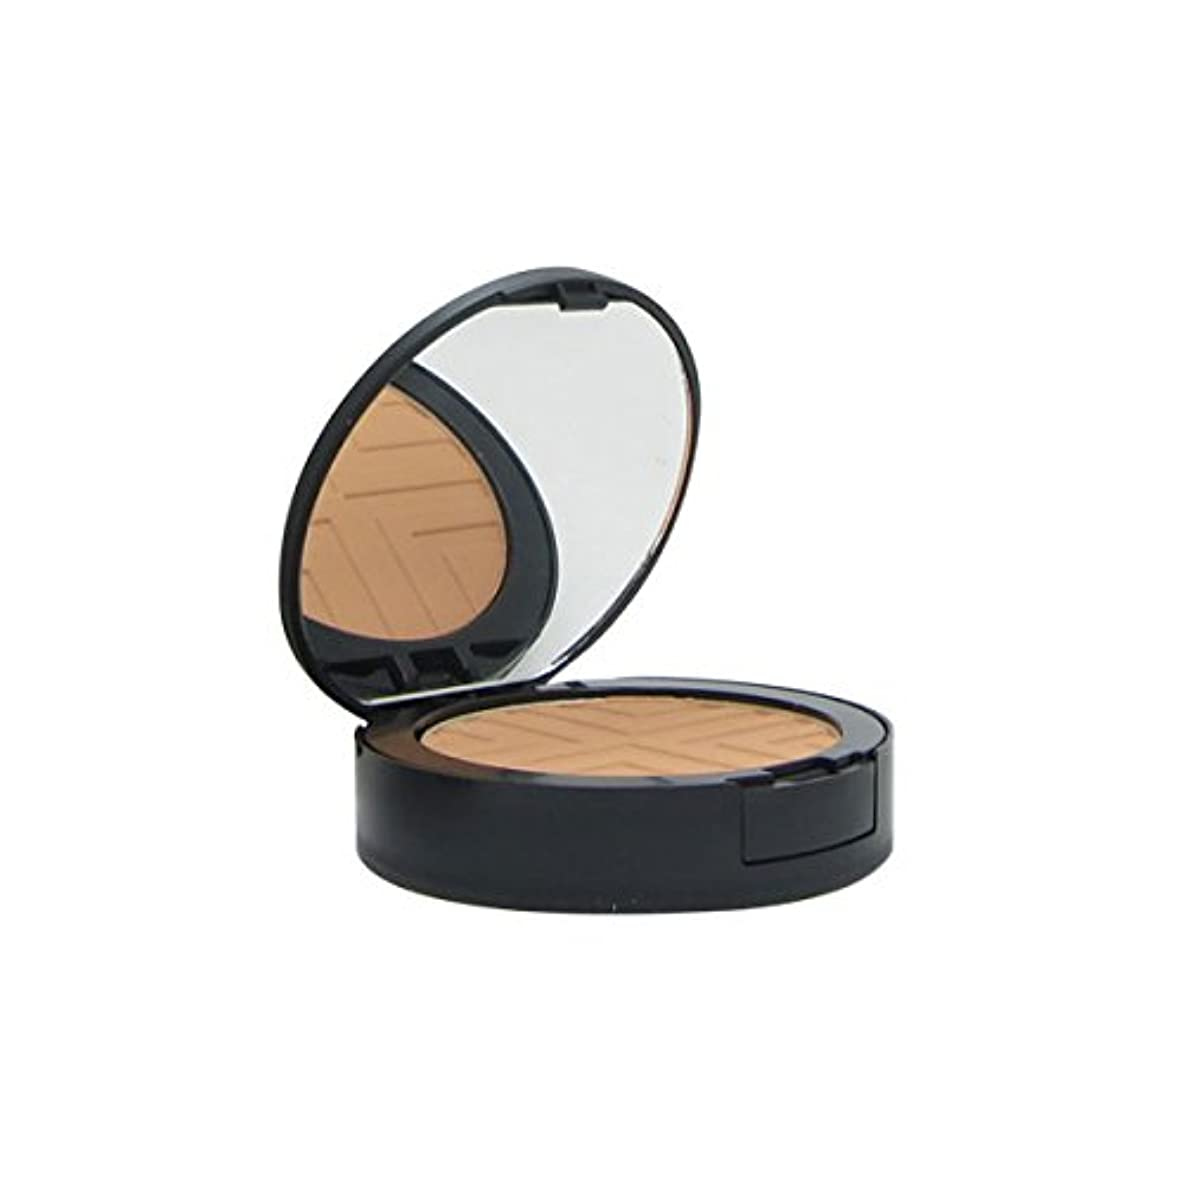 まぶしさ句読点休日にVichy Dermablend Covermatte Compact Powder Foundation 55 Bronze 9,5g [並行輸入品]